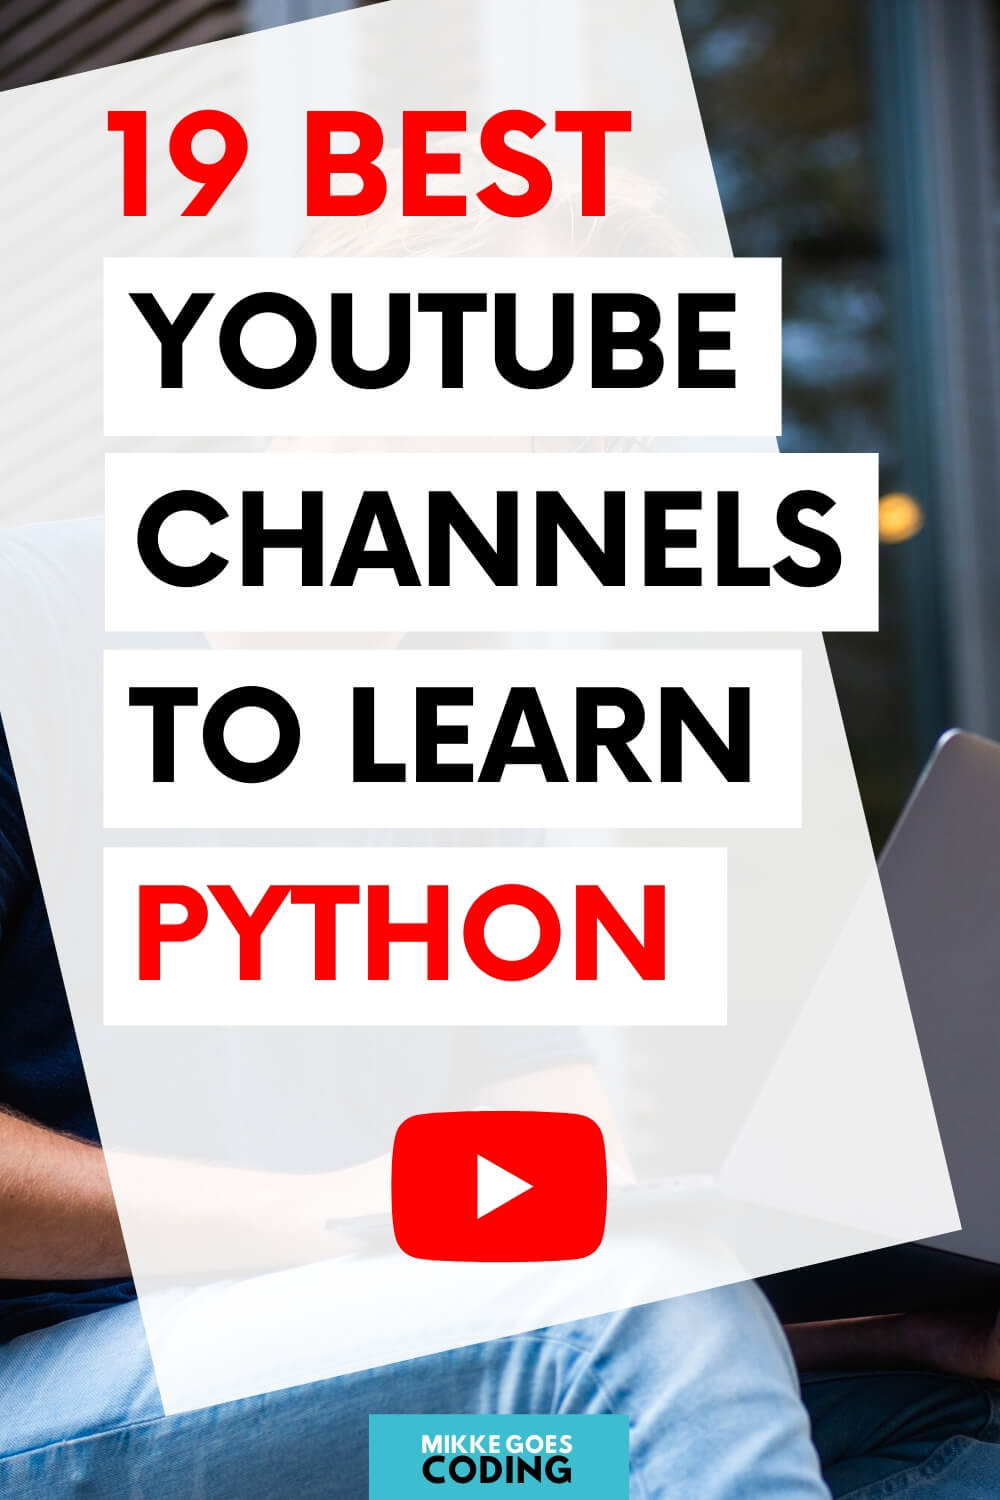 19 best YouTube channels to learn Python coding for beginners